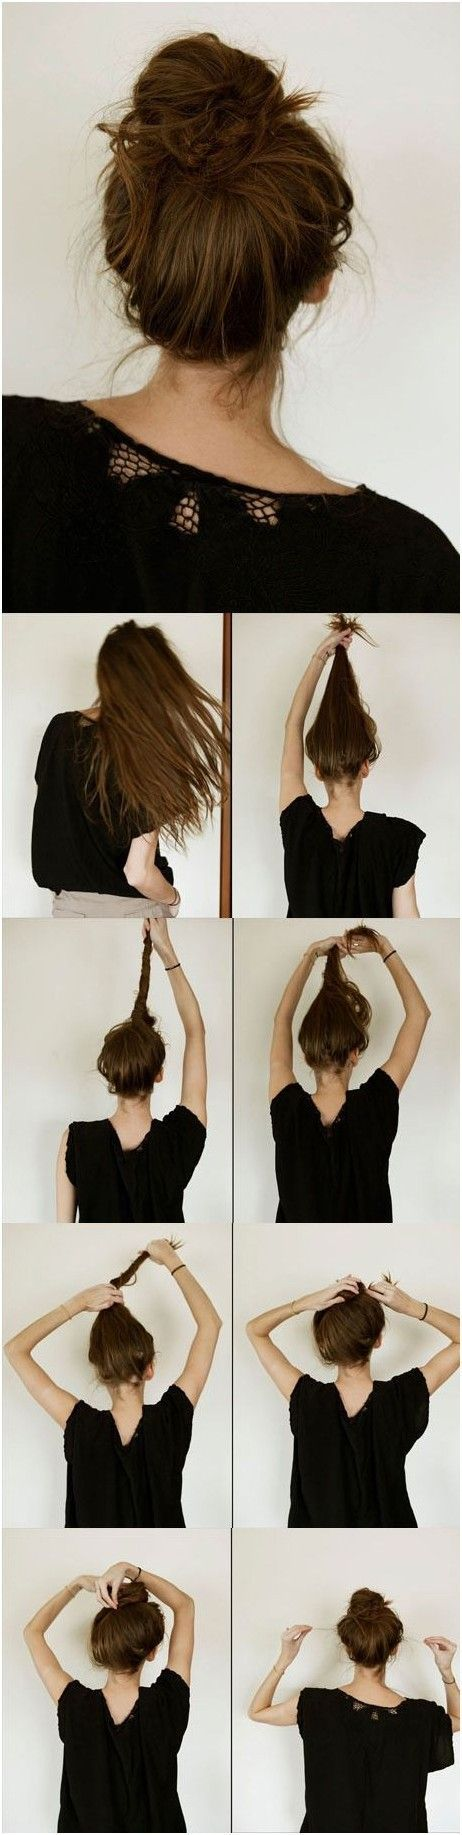 Messy Bun | This hairstyle doesn't look too complicated to make. | DIY Hairstyle...